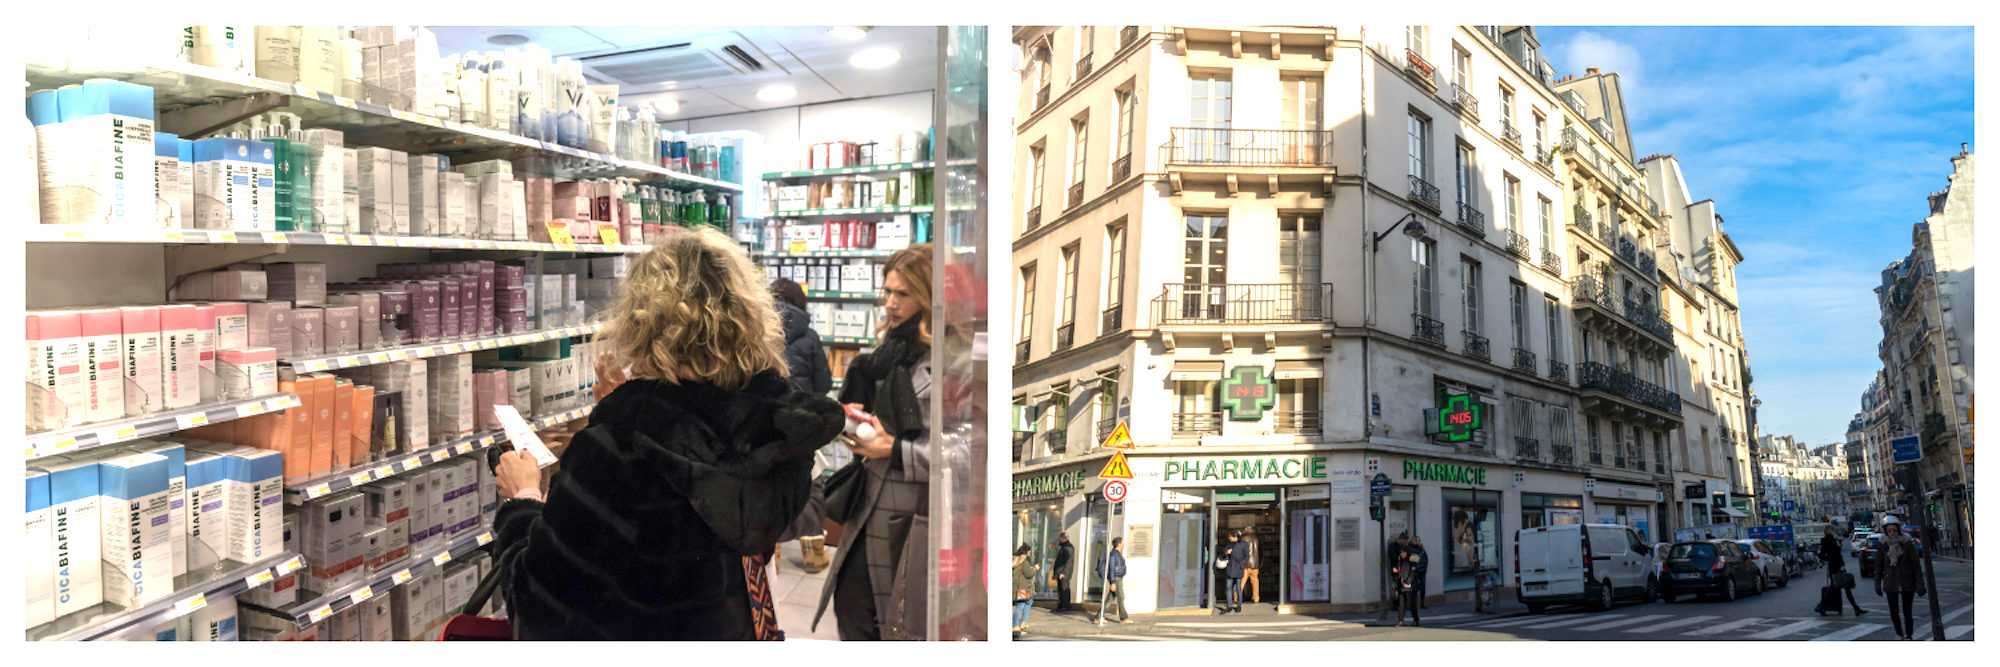 Shopping for discounted French beauty products at pharmacy Citypharma in Paris (left). Outside the best place to buy French beauty products in Paris, Citypharma (right).